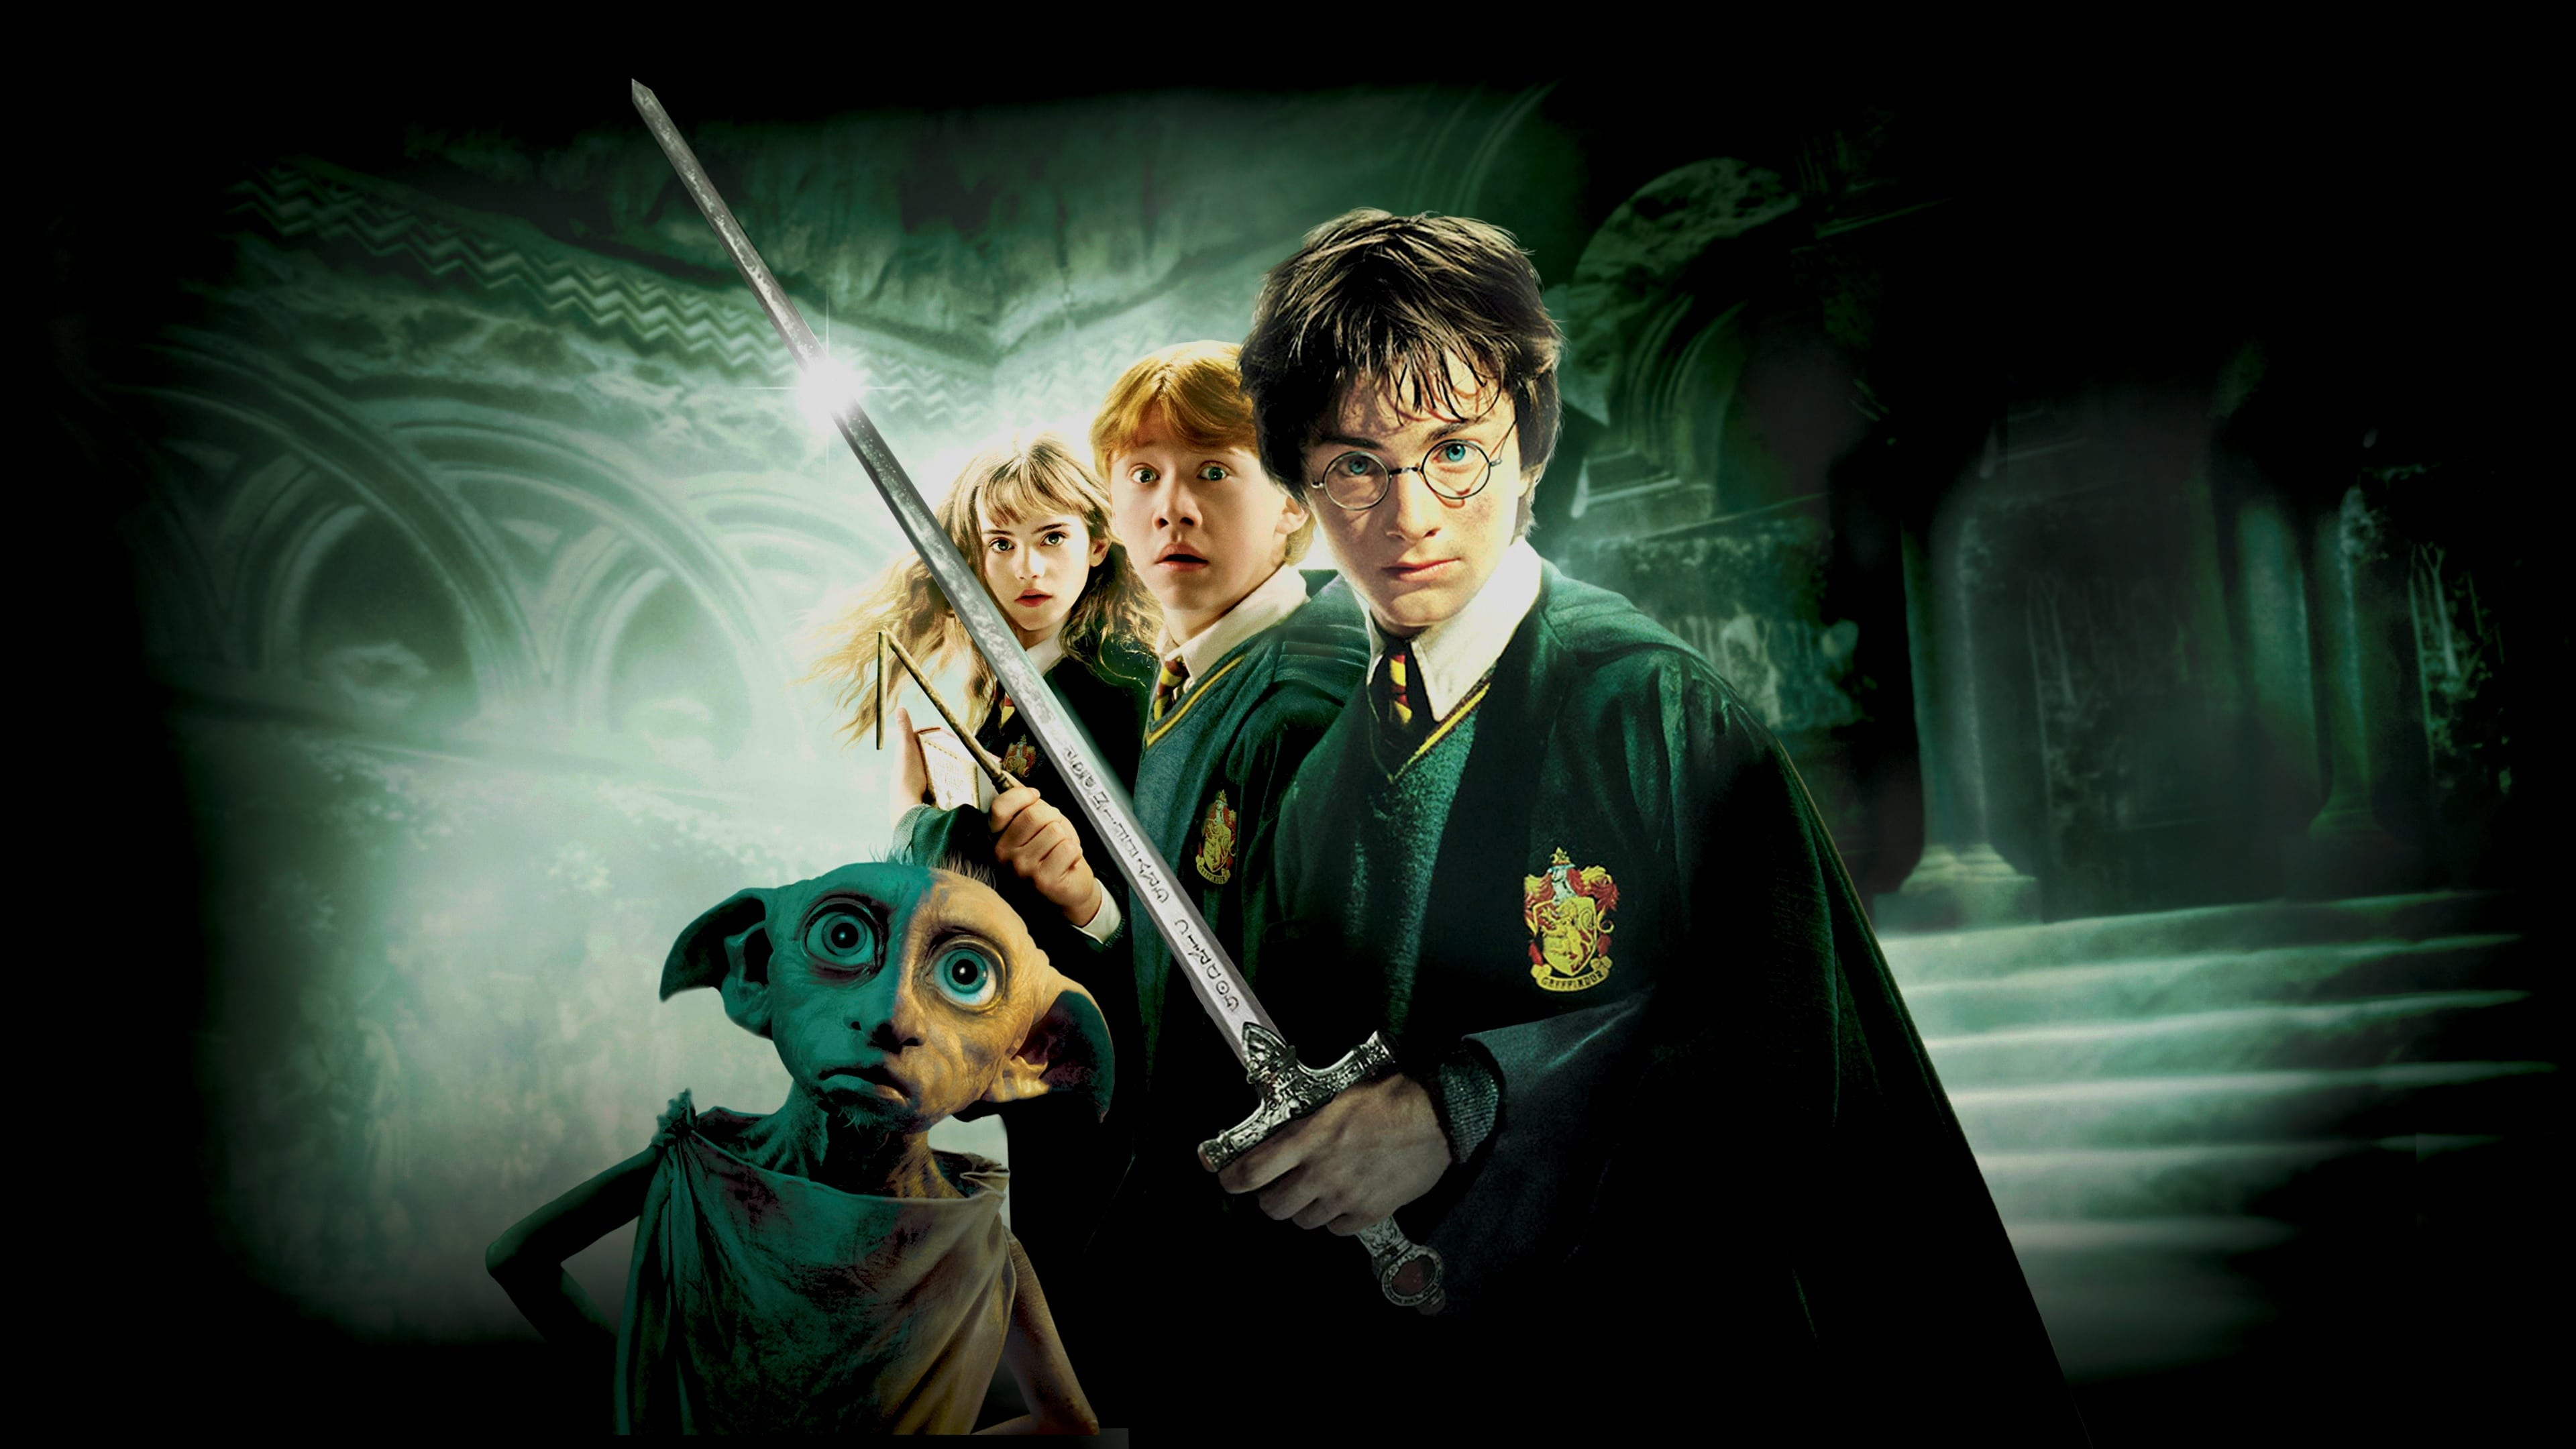 Harry potter et la chambre des secrets 2002 le film - Harry potter la coupe de feu streaming ...